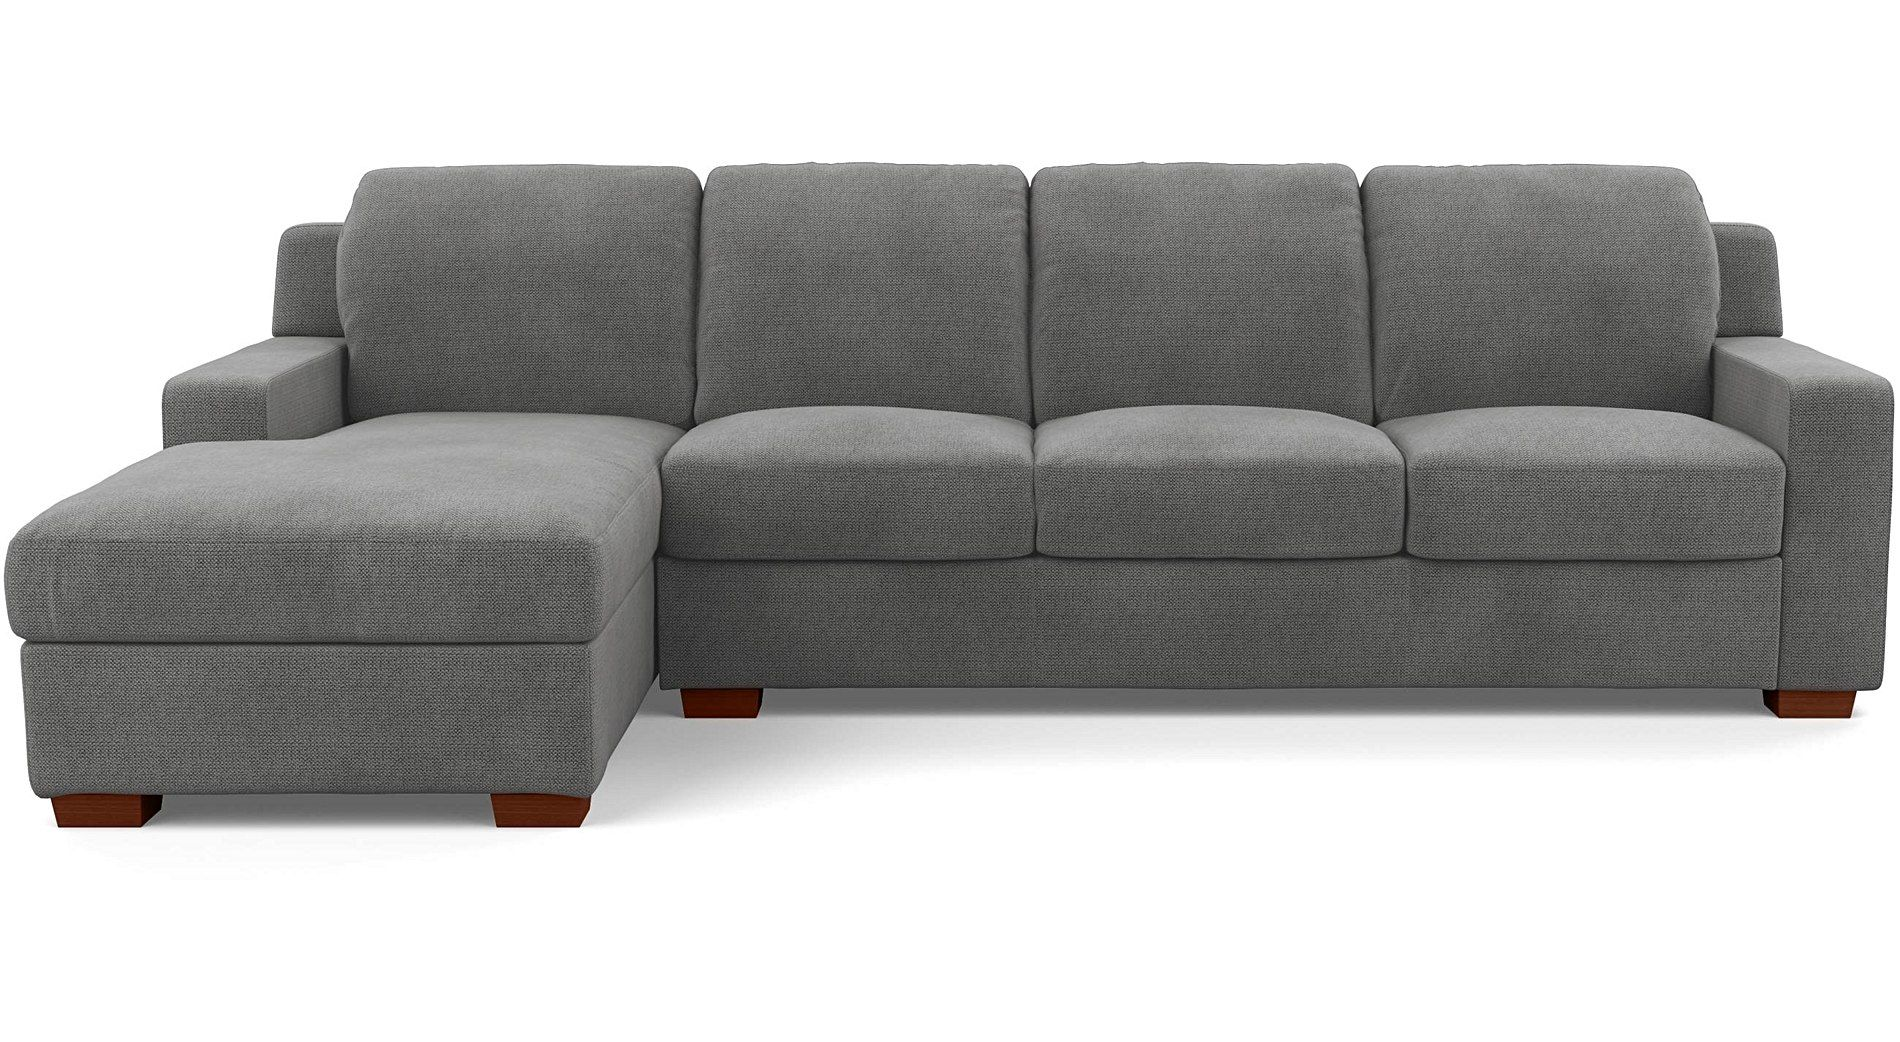 Sofa Berlin Berlin Modular In 2019 Living Room Sofa Furniture Sofa